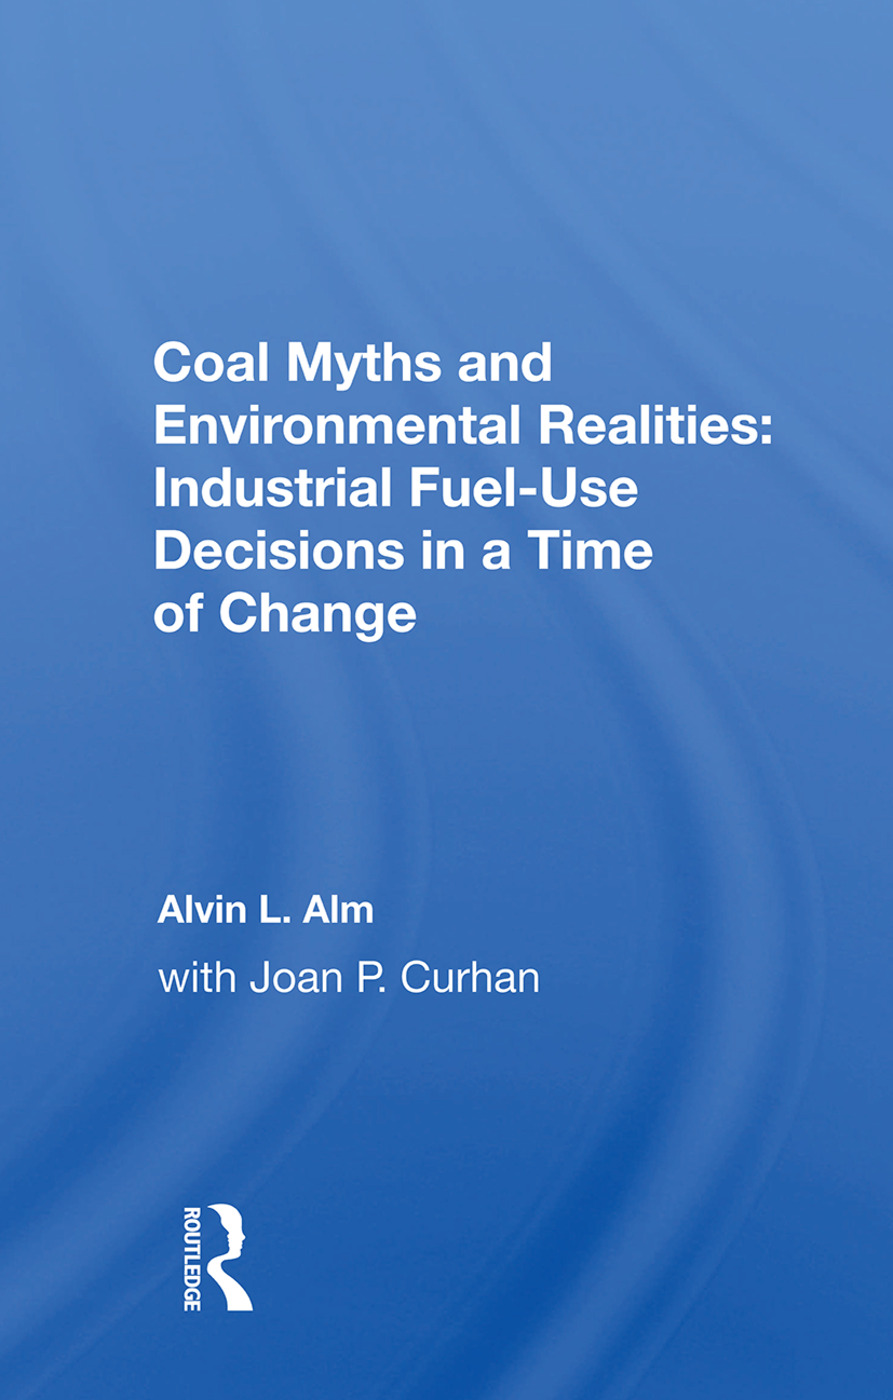 Coal Myths And Environmental Realities: Industrial Fuel-use Decisions In A Time Of Change book cover